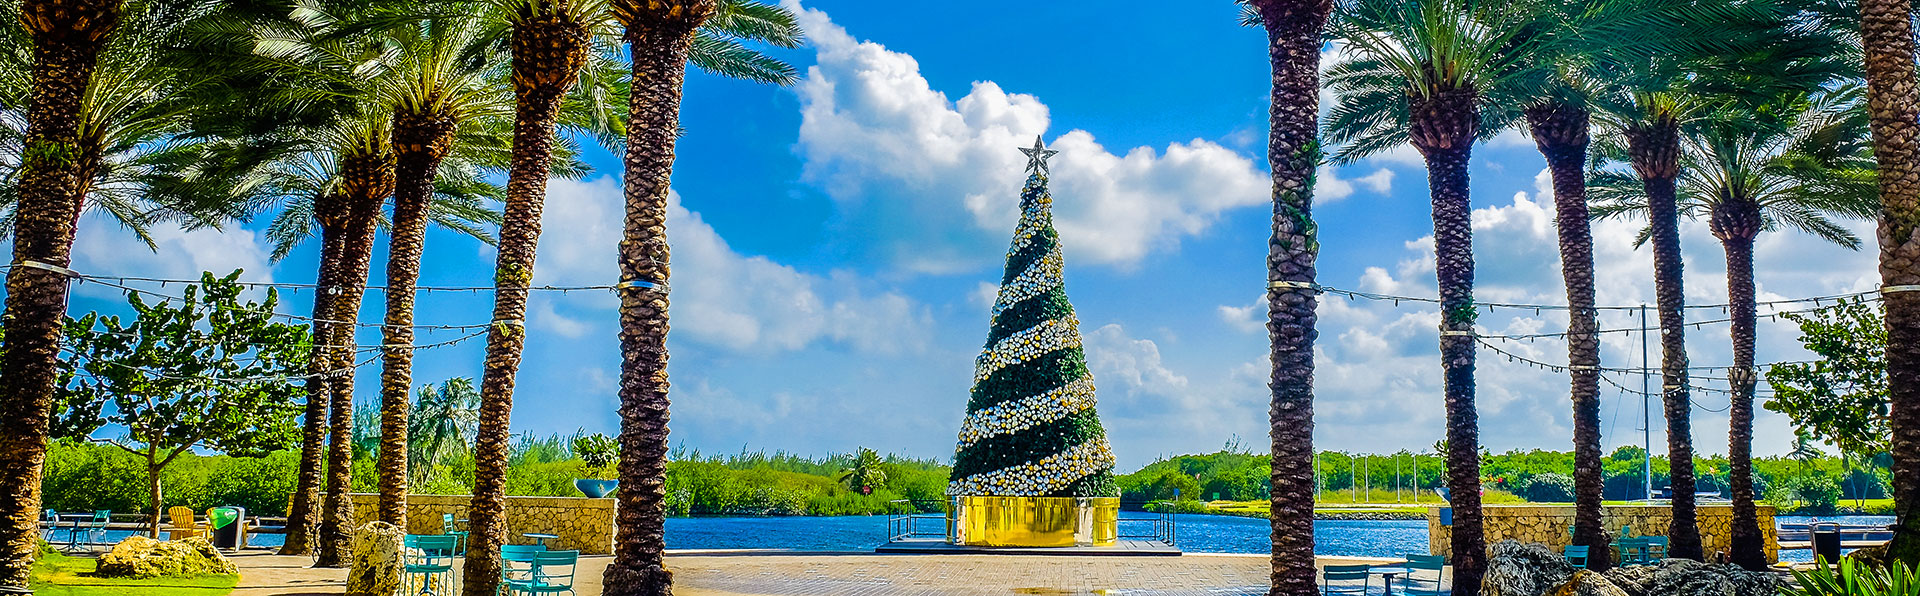 Giant Outdoor Christmas Tree at Camana Bay Entertainment Center